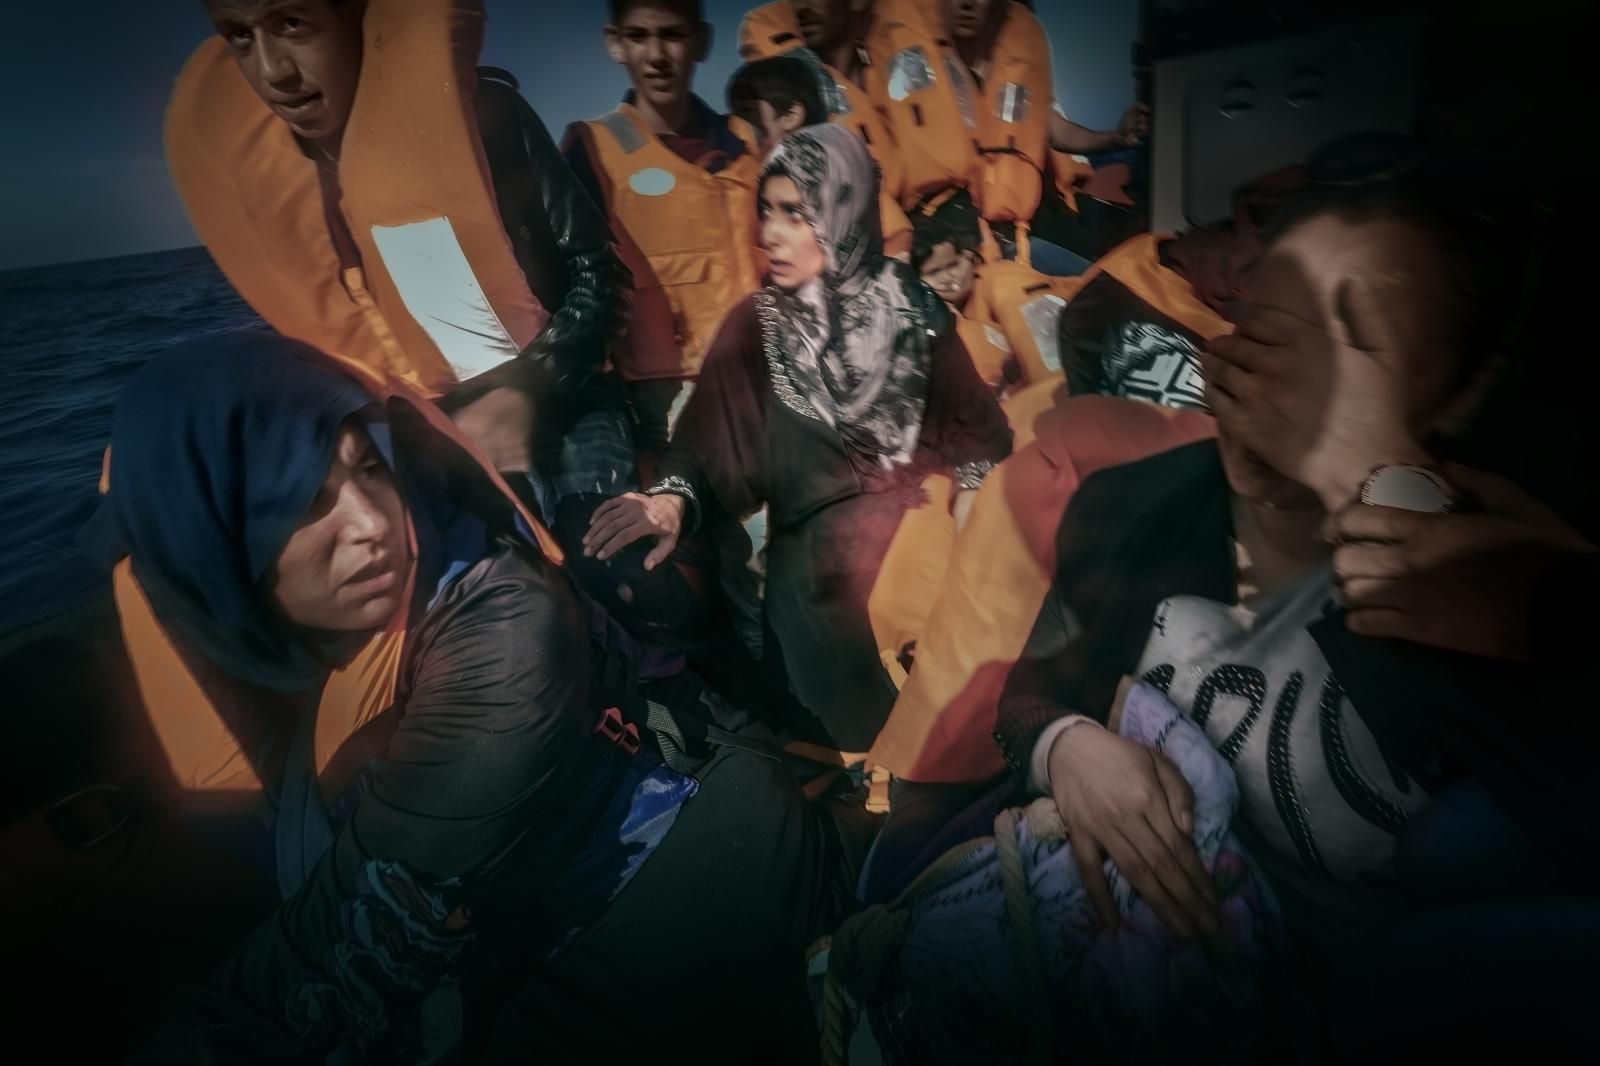 Syrian and Libyan refugees (210 in all) rescued by members of the NGO Proactiva Open Arms, off the Mediterranean coast of the Libyan city of Sabratha, after their three wooden boats encountered problems. In the image, a woman is in shock.